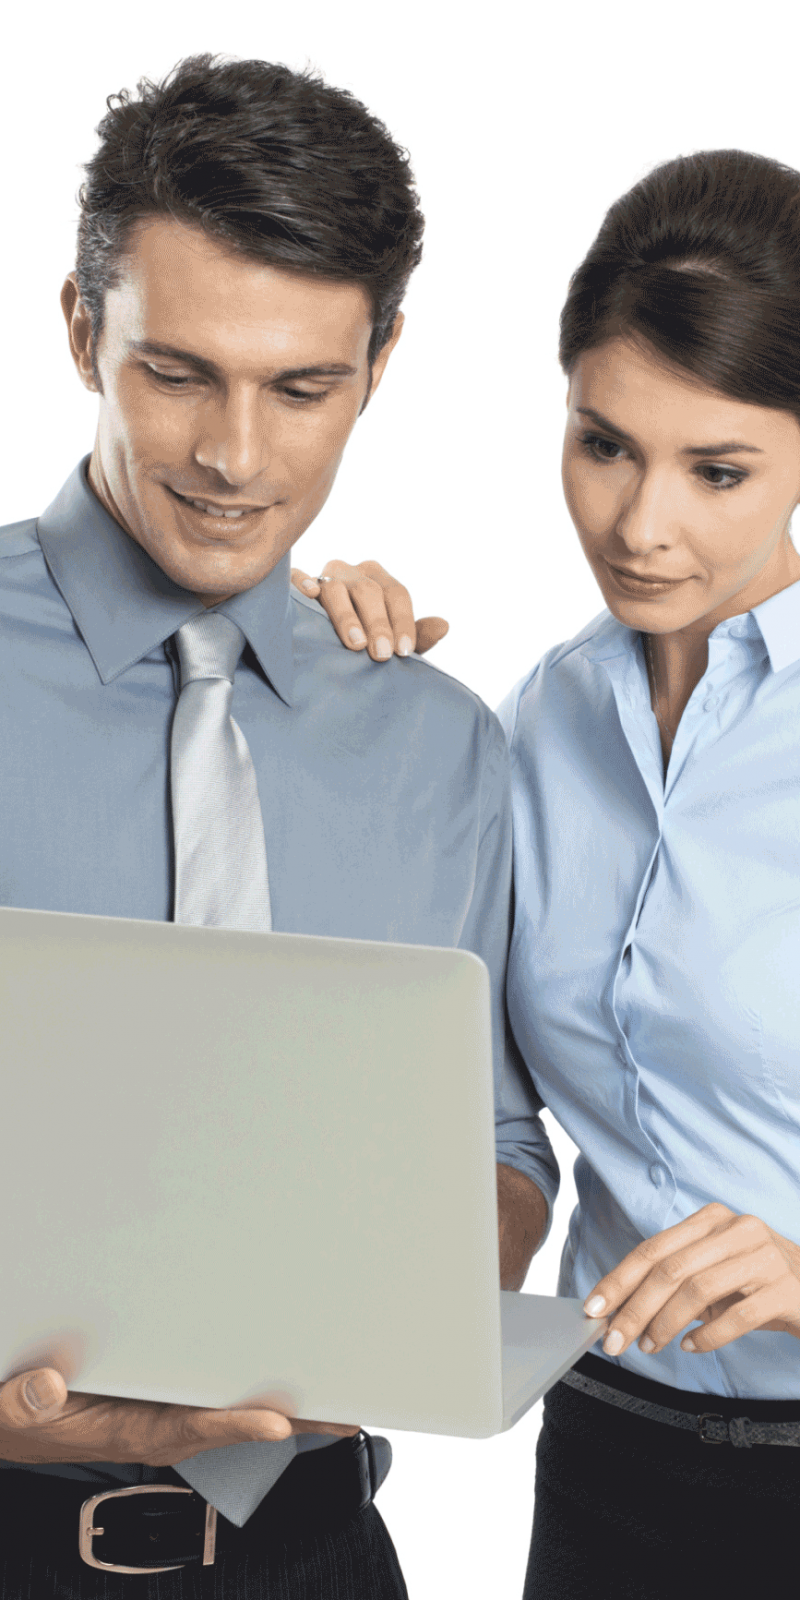 people-using-computer-png-transparent-people-using-computerpng-people-at-computer-png-1733_1733